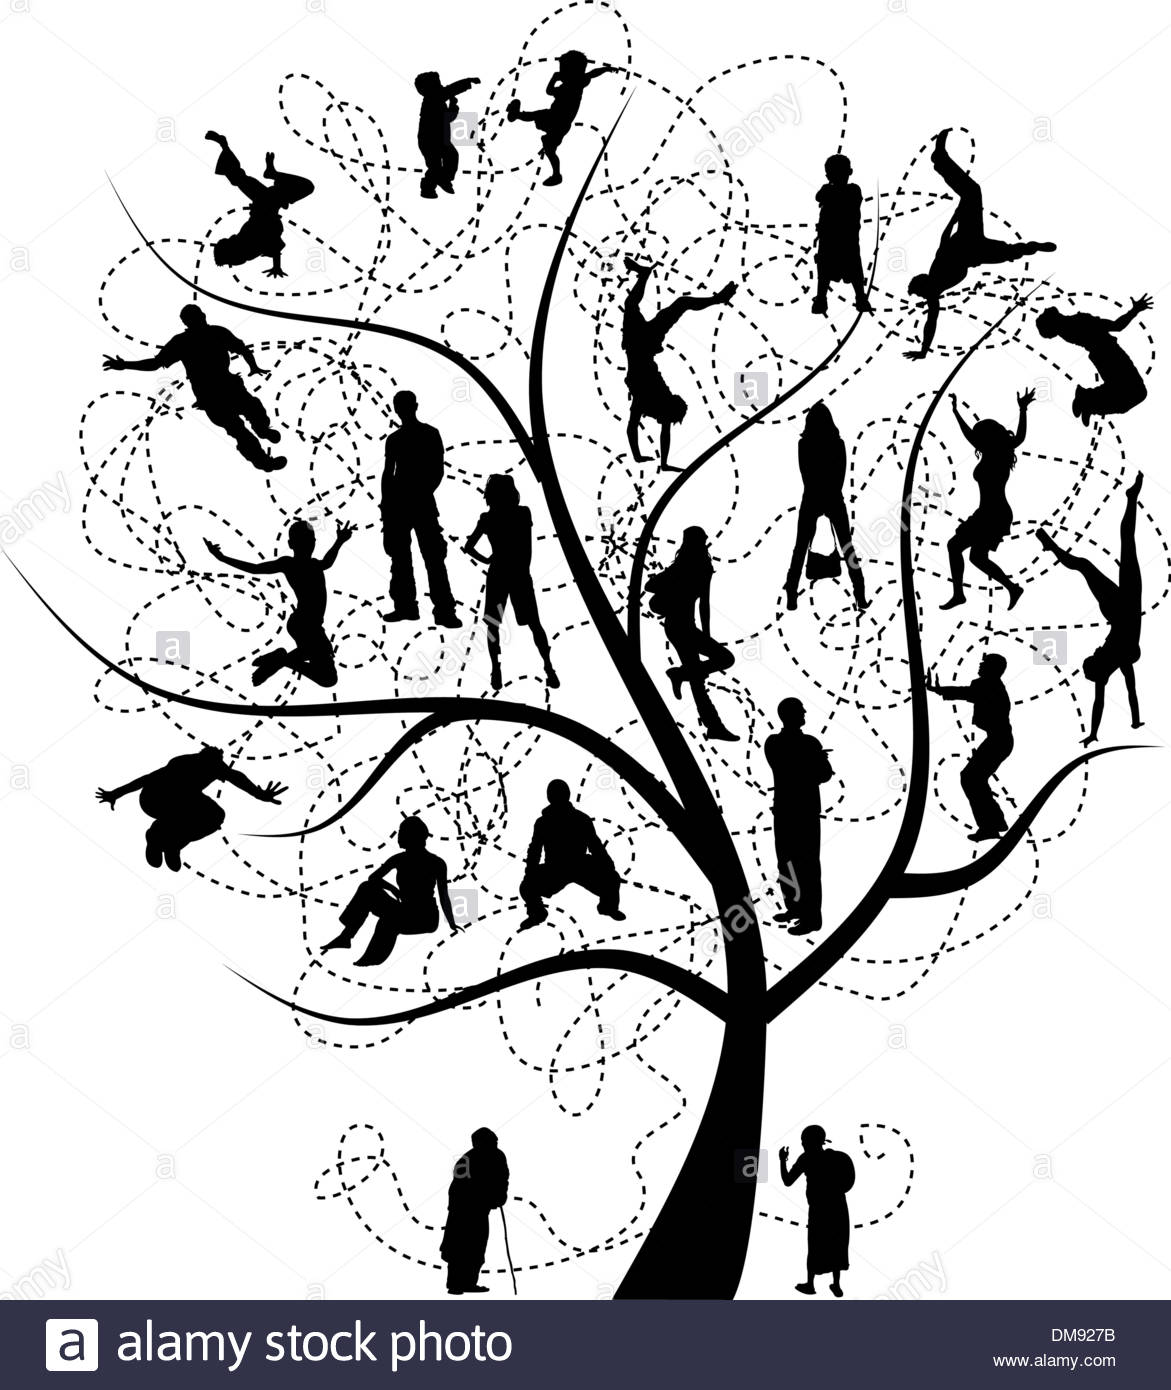 1171x1390 Family Tree, Relatives Stock Vector Art Amp Illustration, Vector